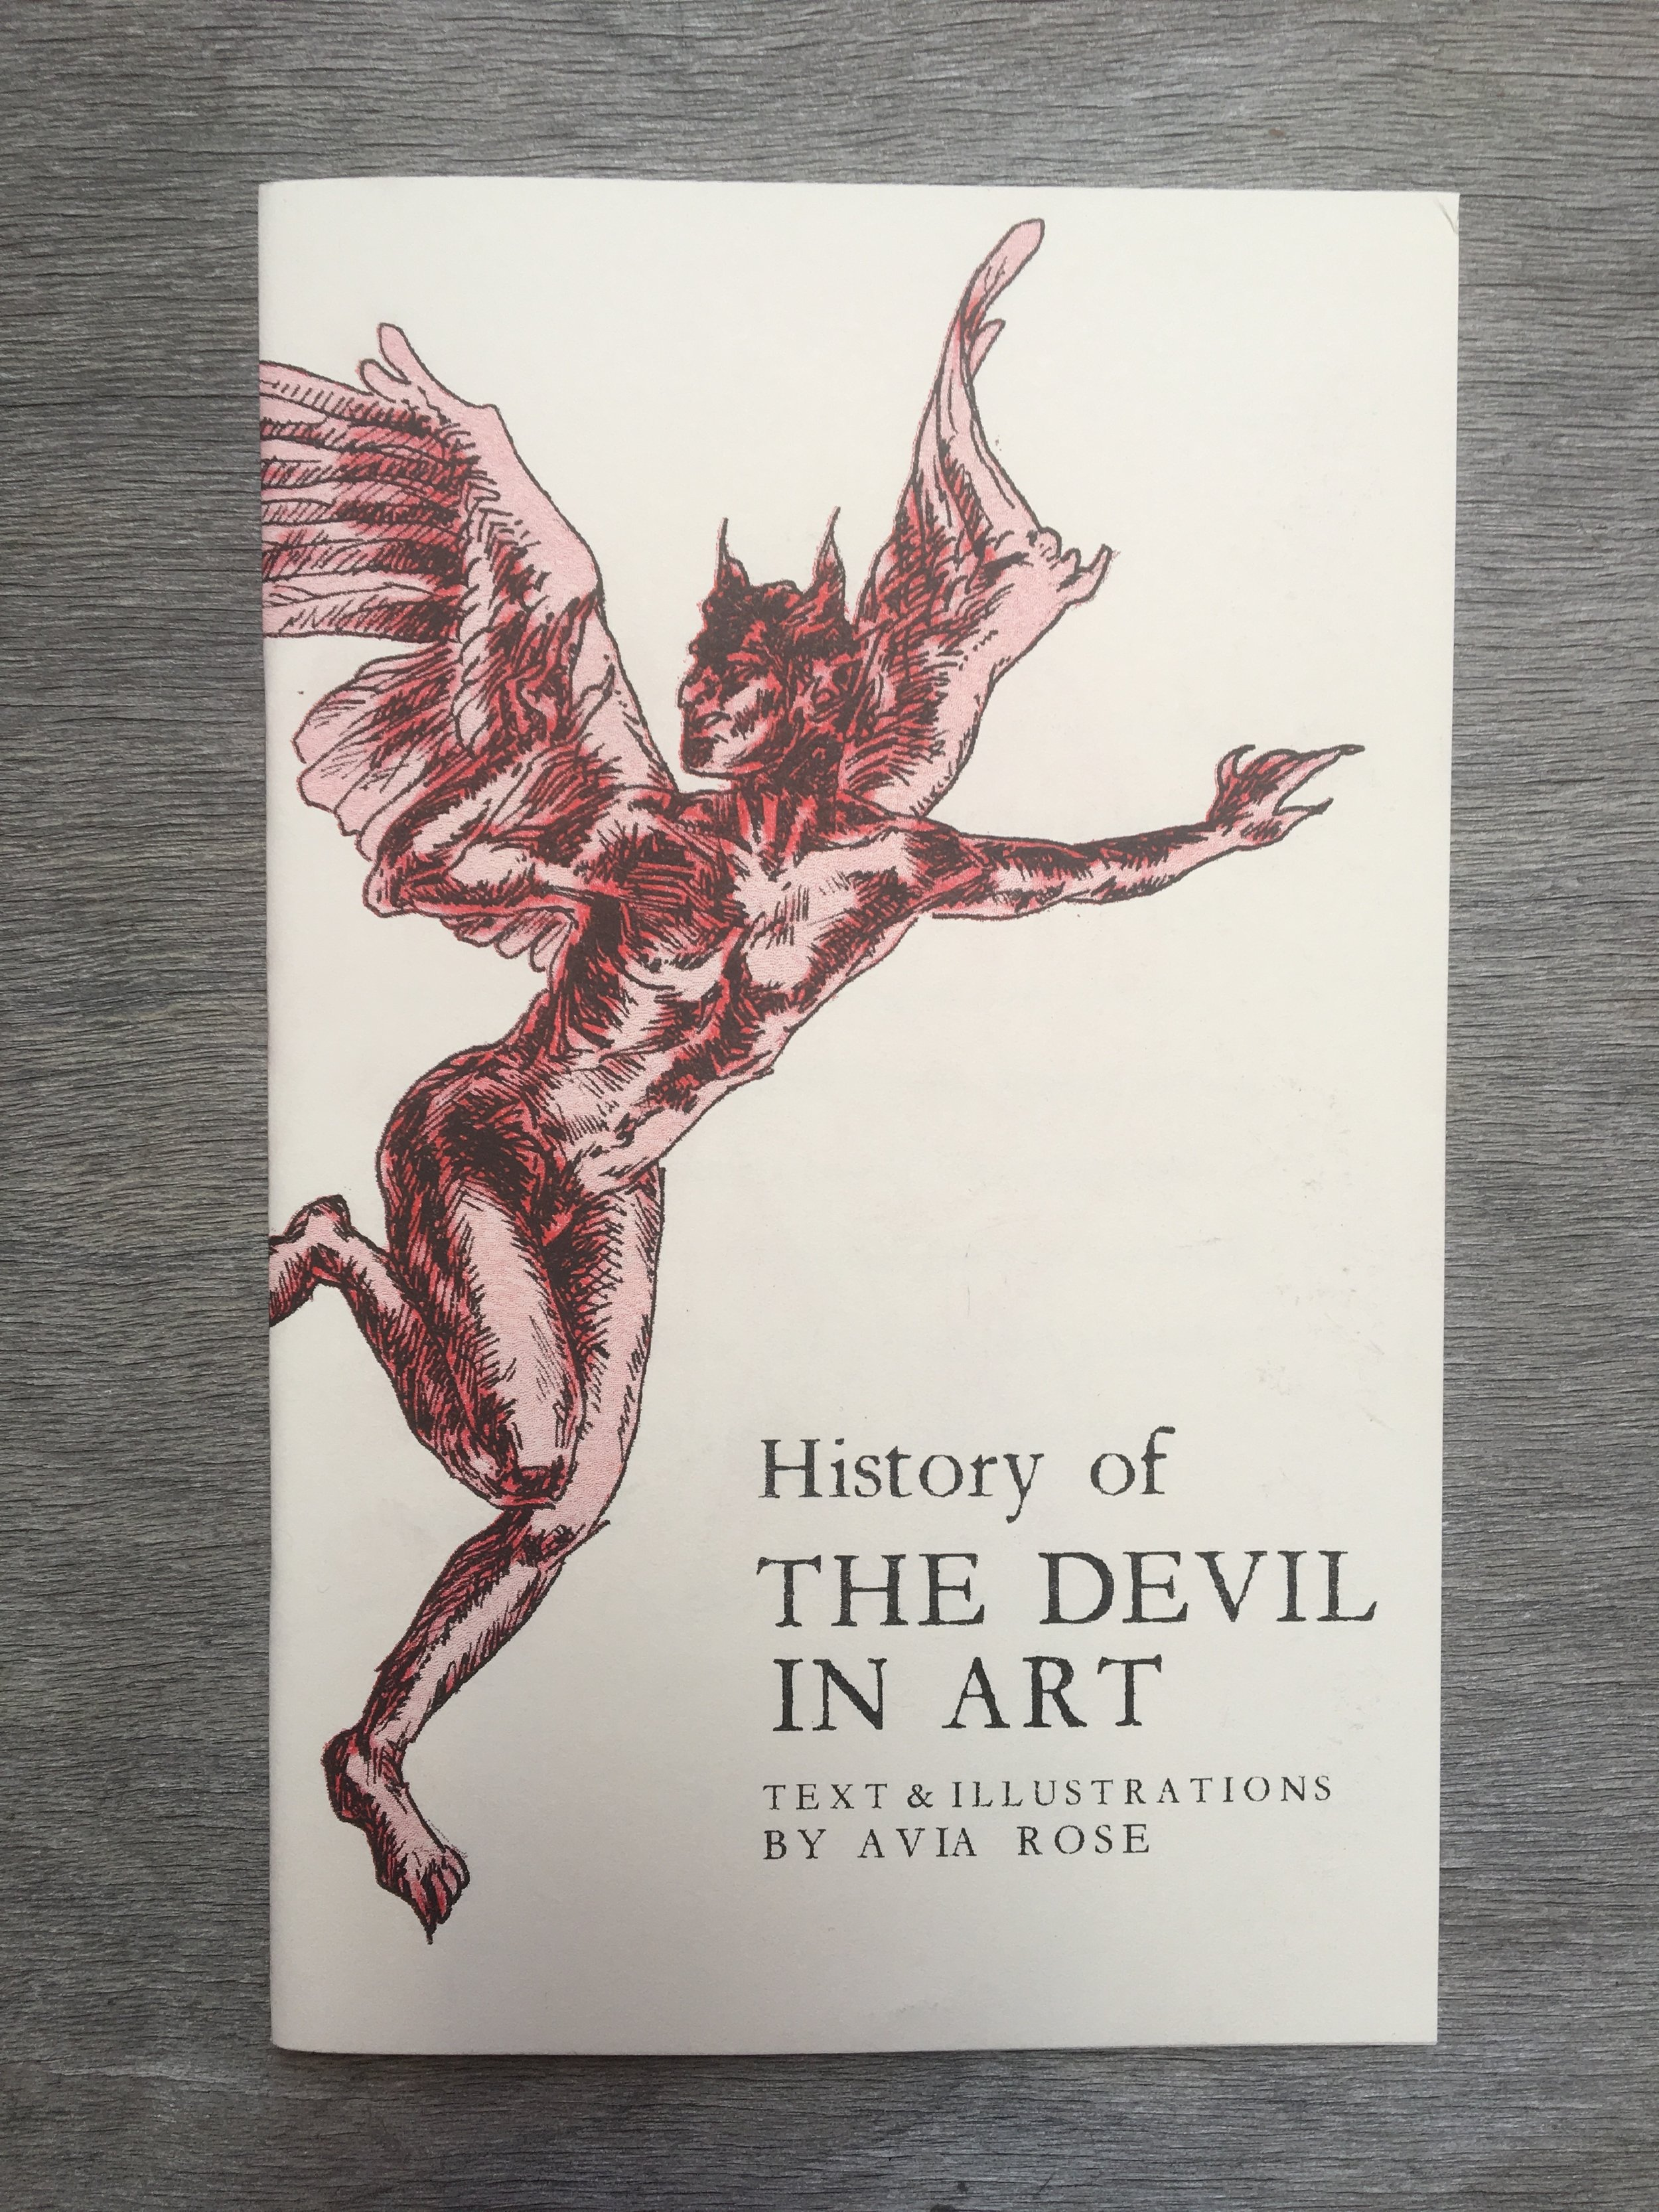 History of the Devil in Art by Avia Rose - 36 pg4.5